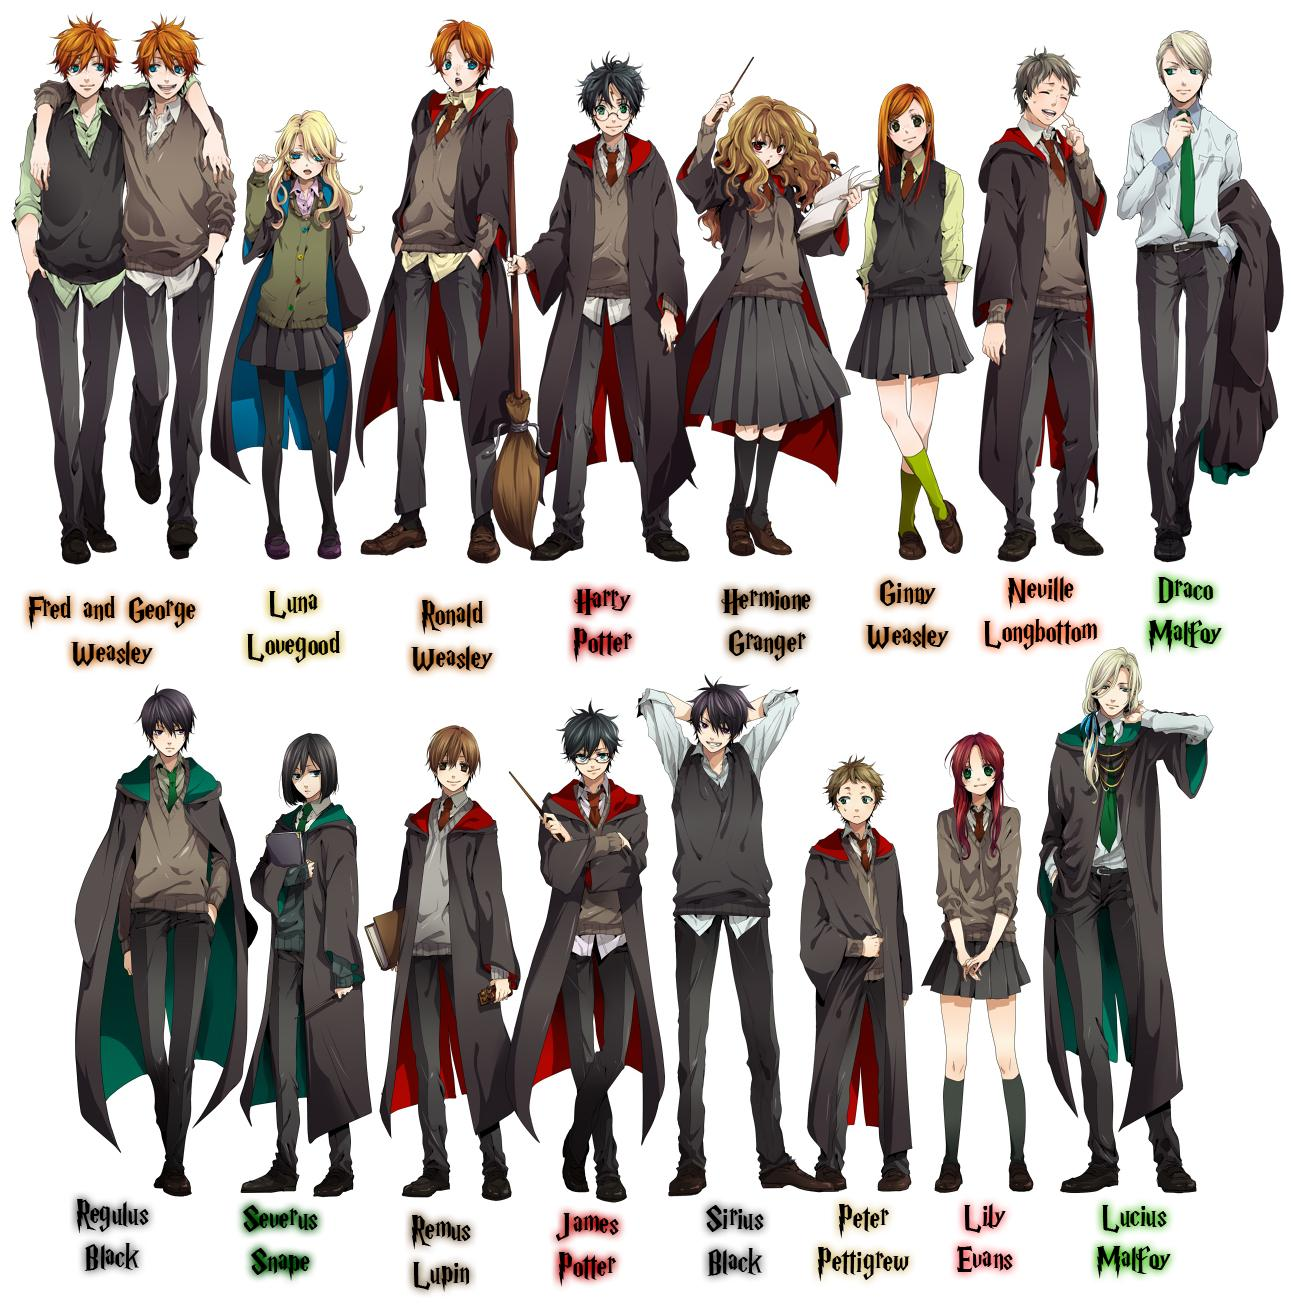 Harry Potter Anime Draco Tags Anime Harry Potter